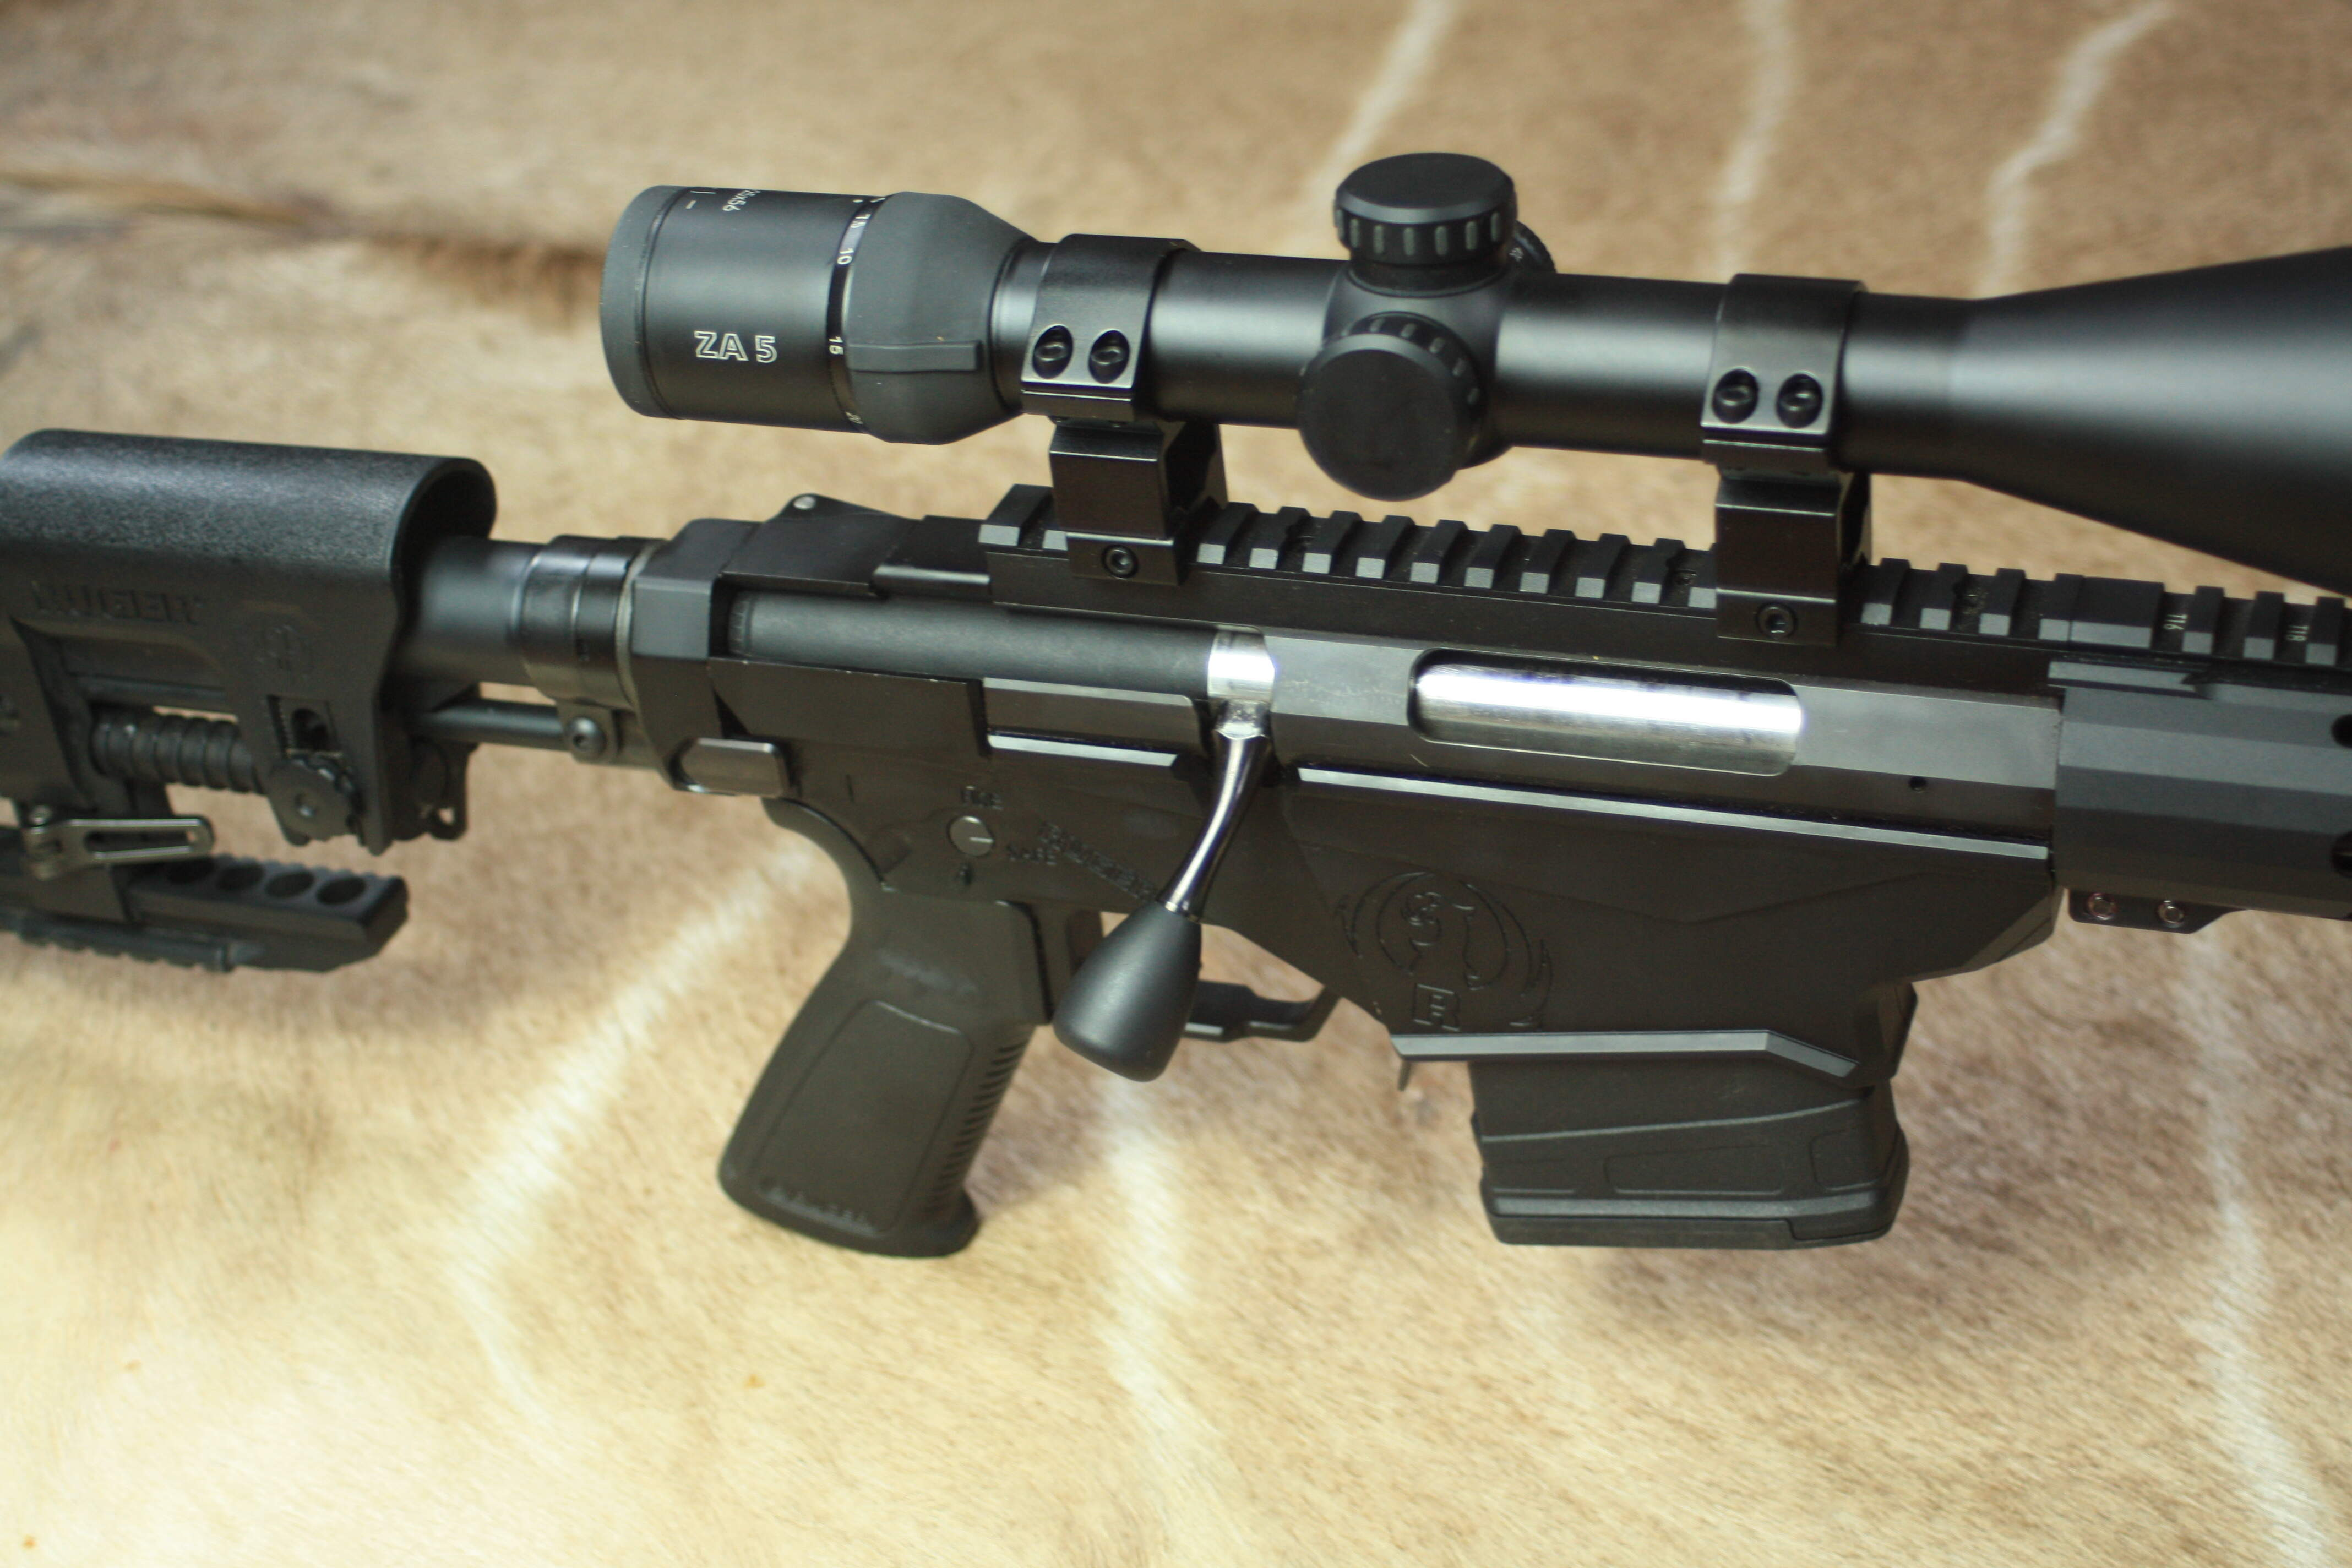 Ruger Precision Bolt Action Rifle in 6.5 Creedmoor